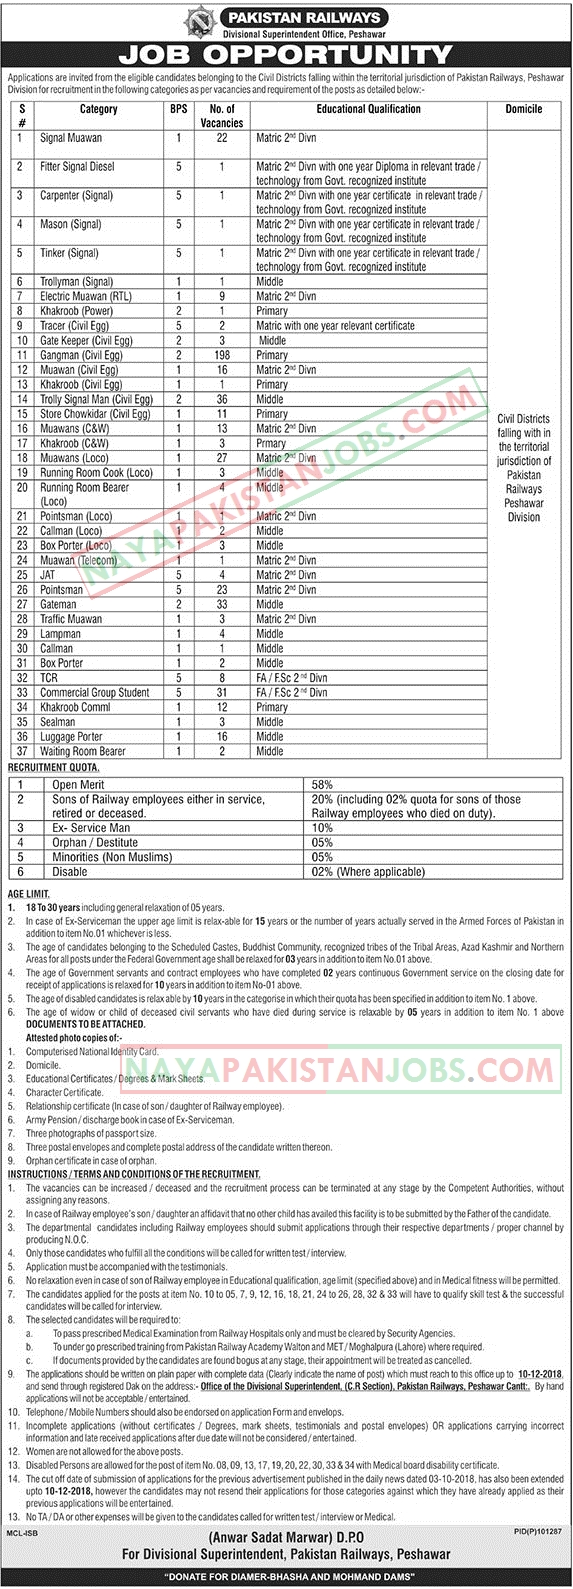 Pakistan Railways Jobs Peshawar Division , Pak Railways Jobs, Pakistan Railways latest jobs application form Download,